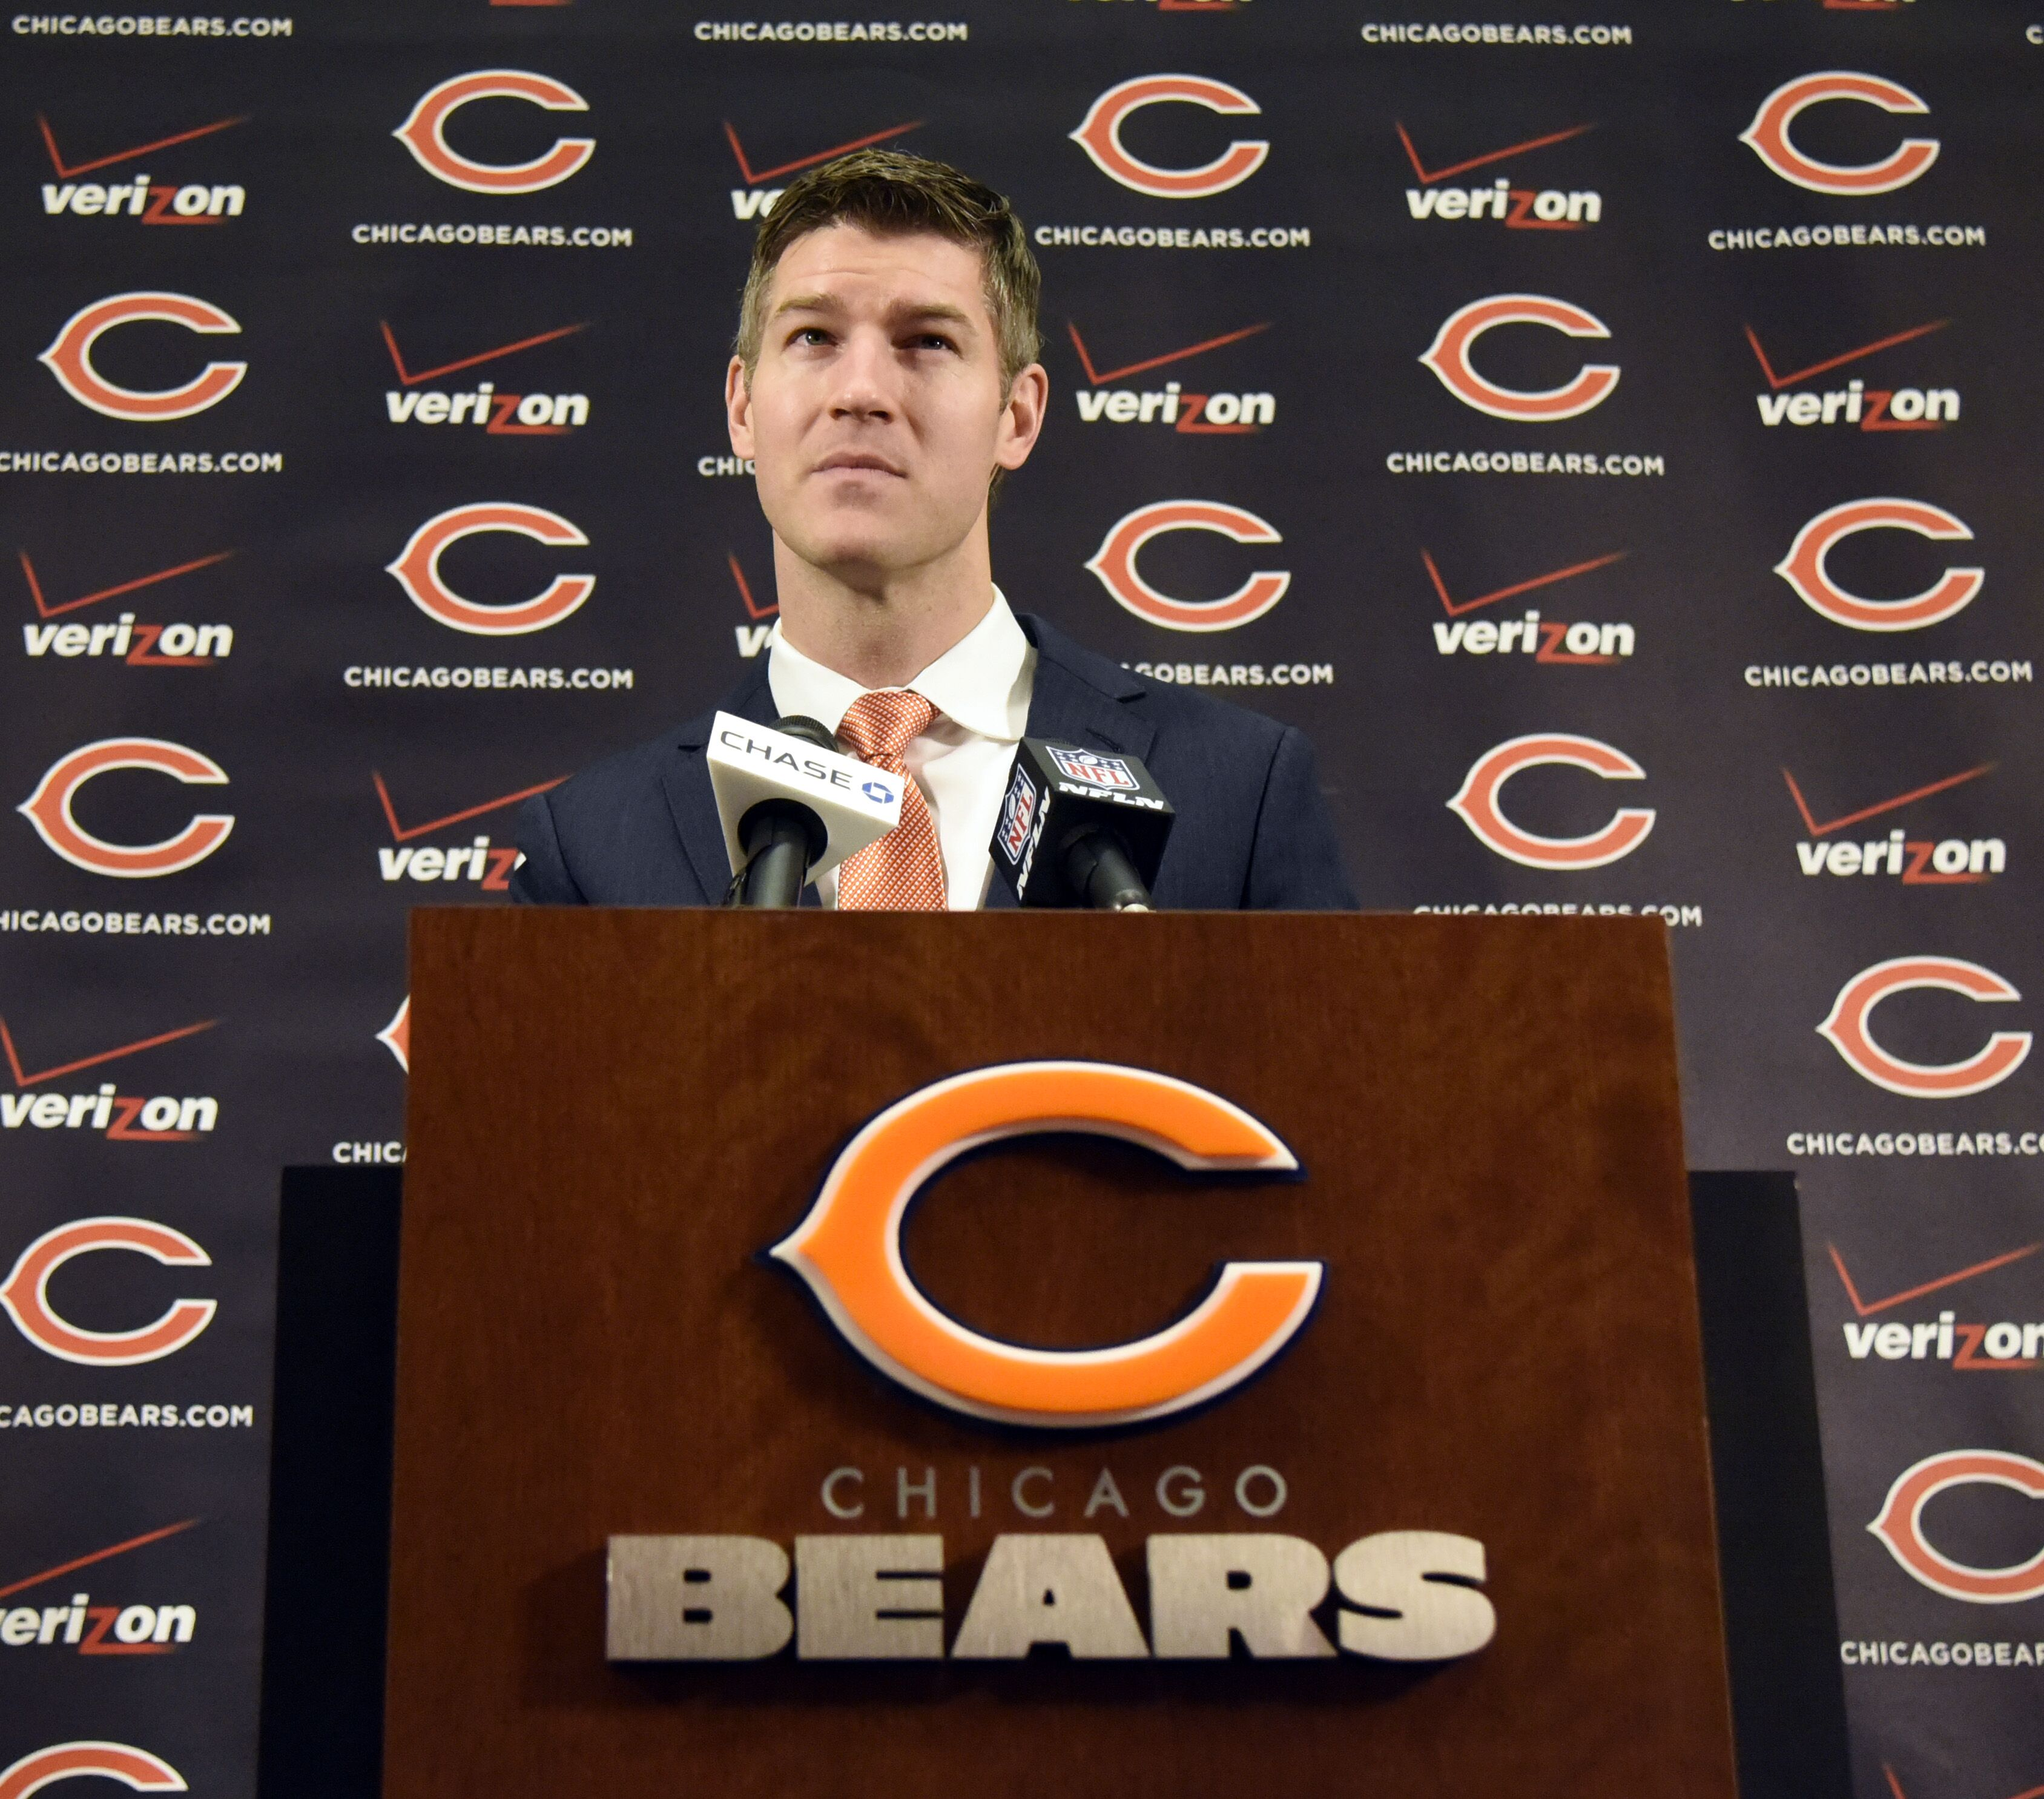 461783512-chicago-bears-introduce-john-fox.jpg